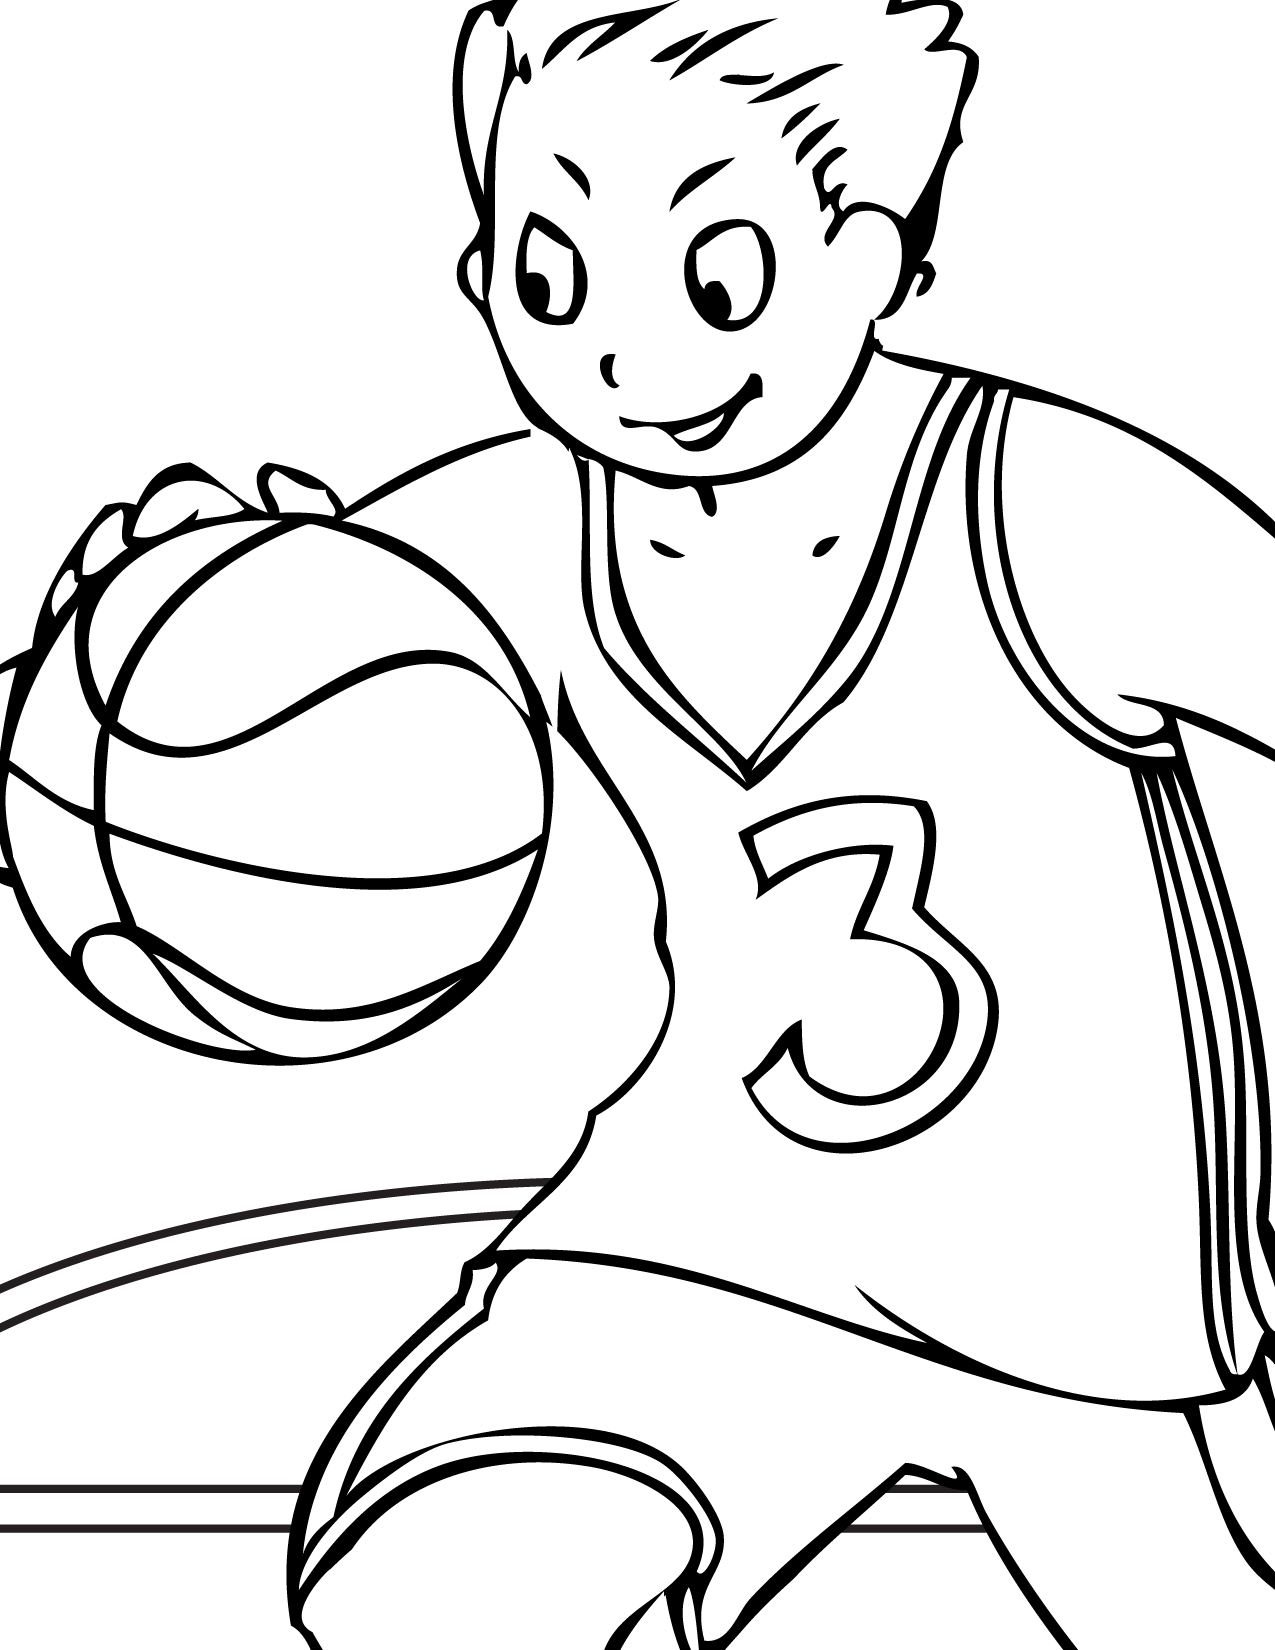 volleyball coloring pages printable volleyball coloring pages free download on clipartmag pages coloring volleyball printable